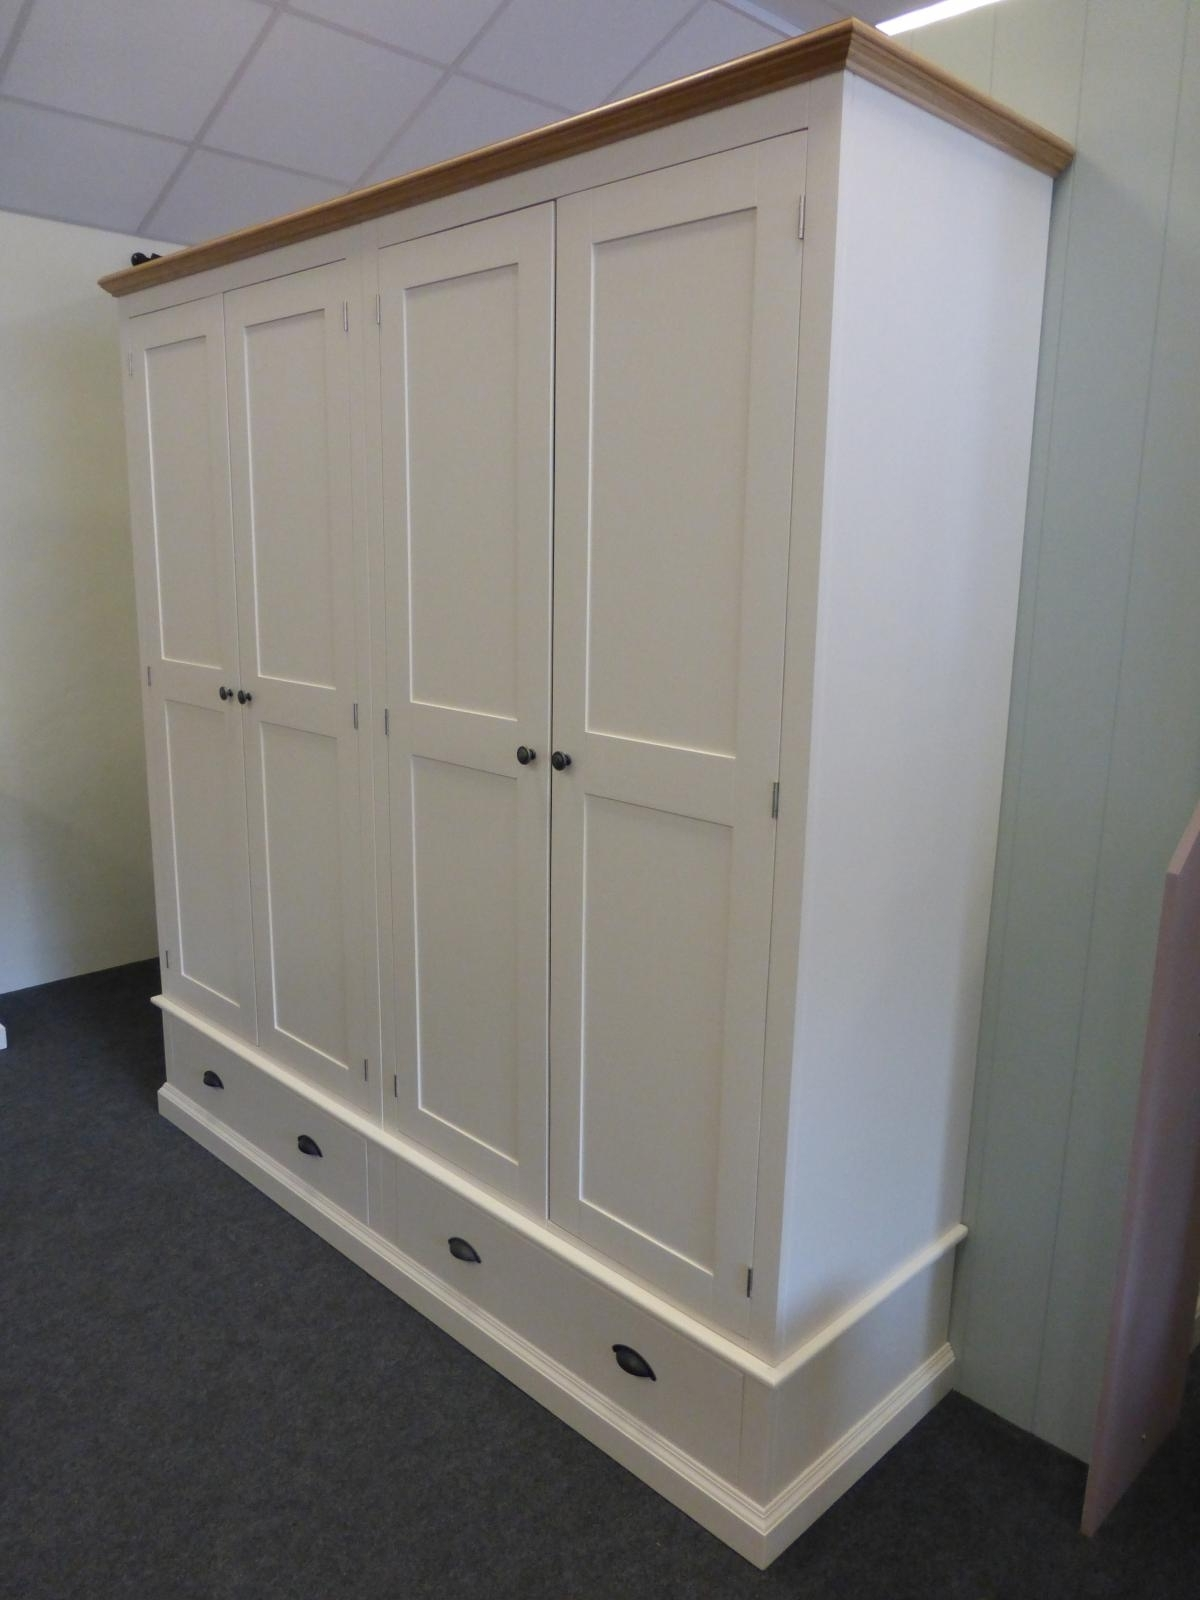 Tall Wardrobes Intended For Preferred Painted Tall Quad Wardrobe – Painted – Wardrobes – Pine Shop Bury (View 10 of 15)